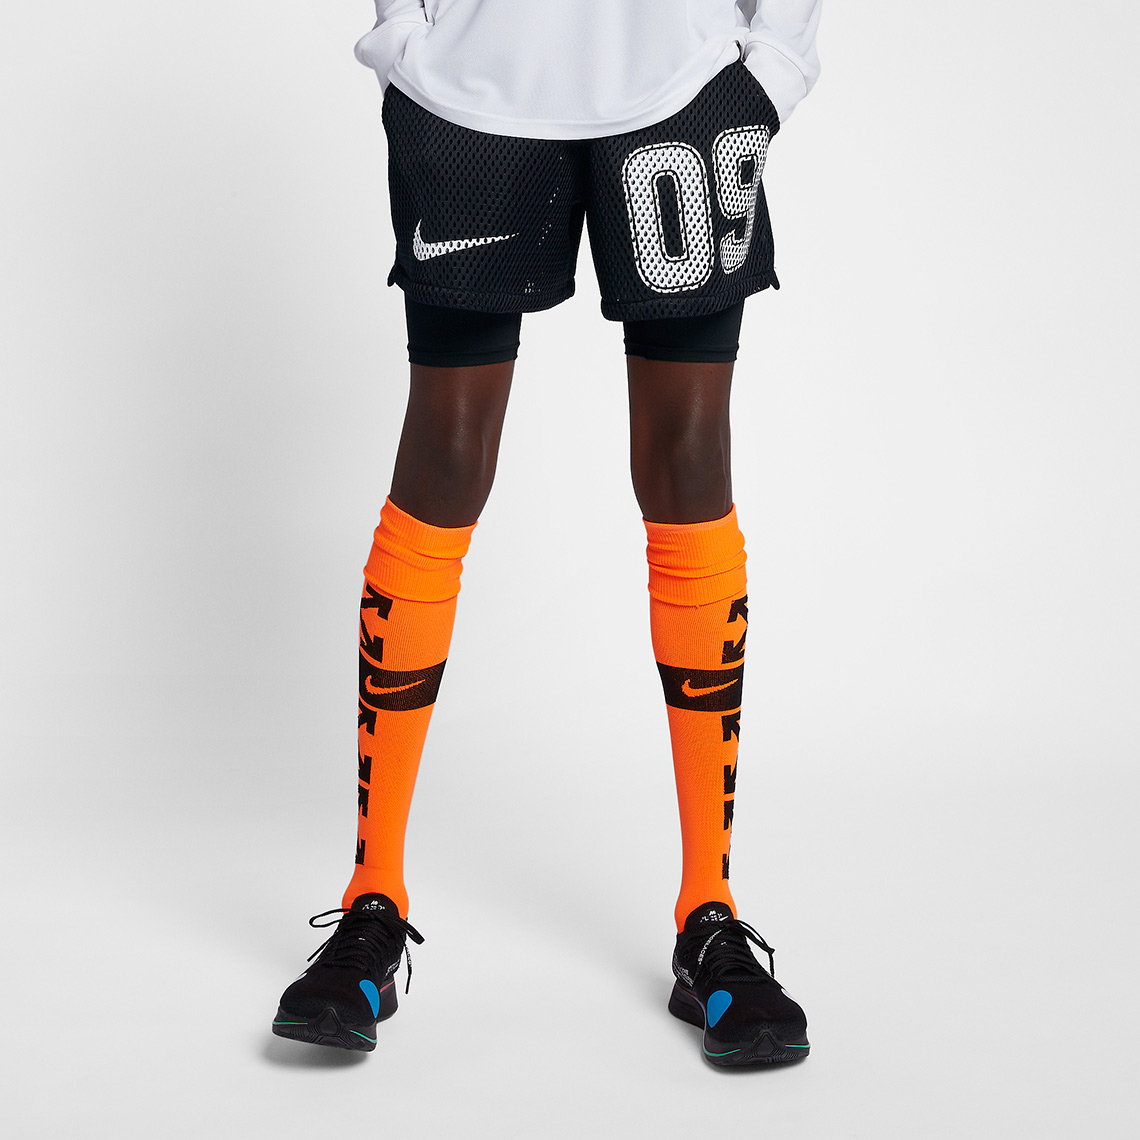 off-white-nike-soccer-shorts-black-AH0376-010-1 - SNKRVN